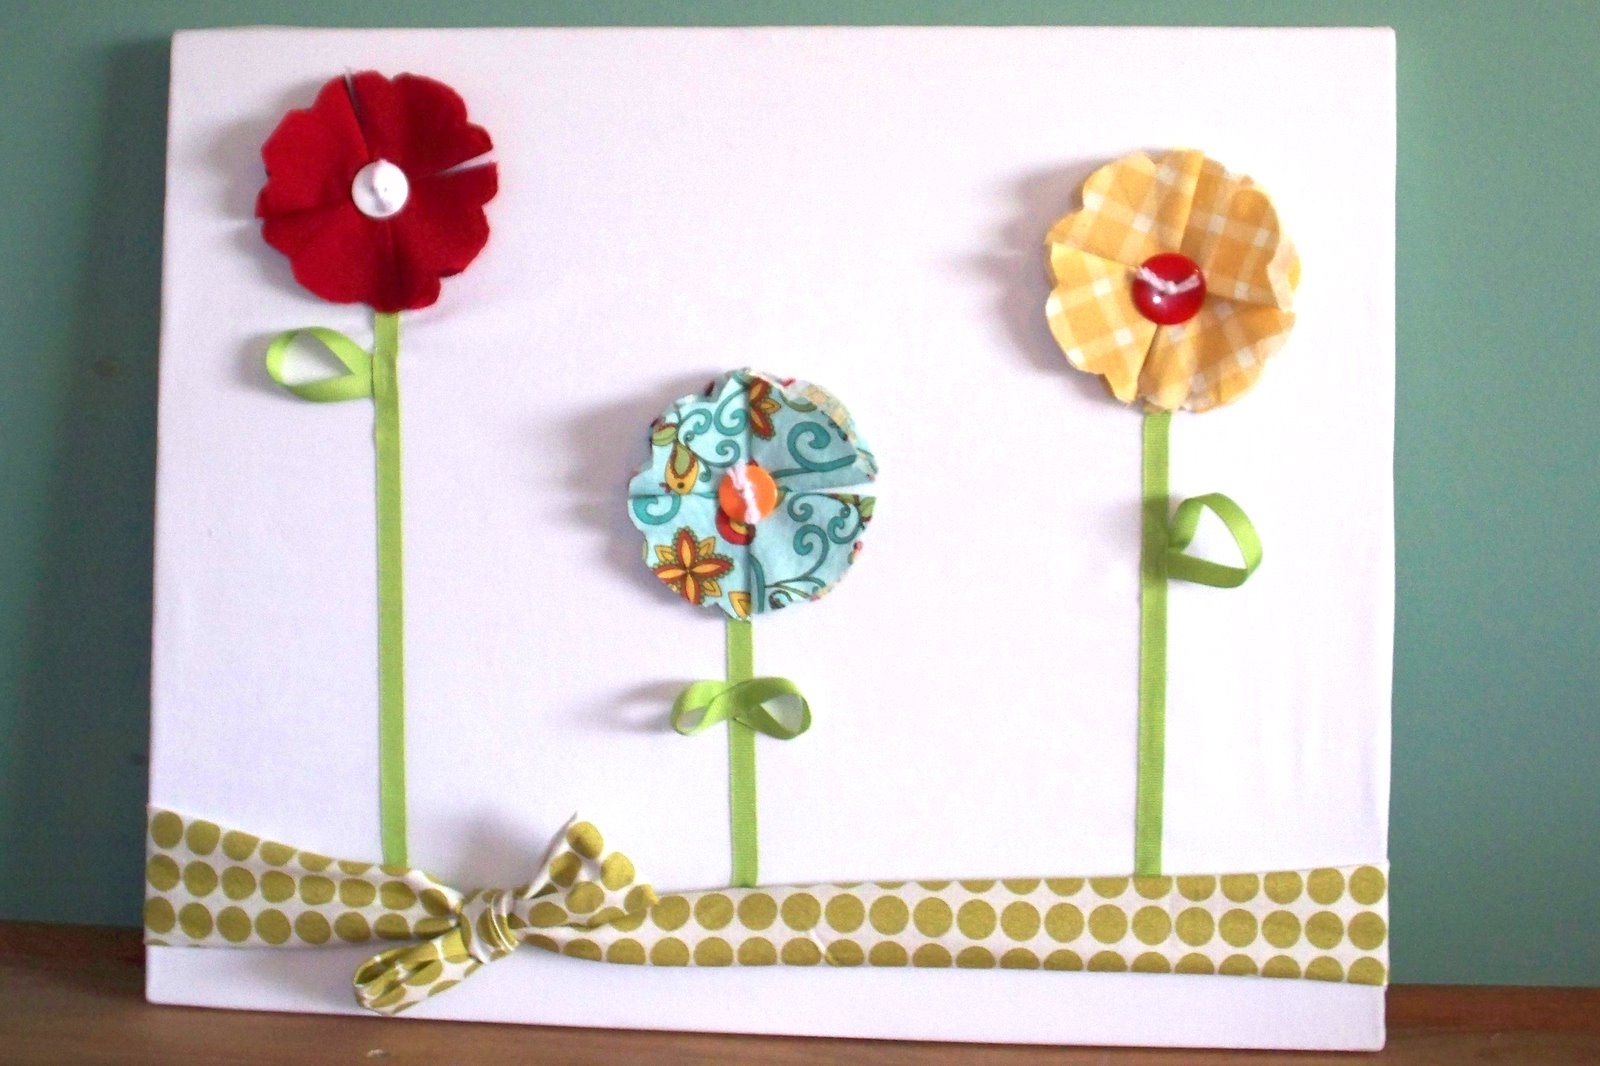 Most Recently Released Chicy Creations: 3d Fabric Flower Wall Art With Regard To Fabric Flower Wall Art (View 5 of 15)